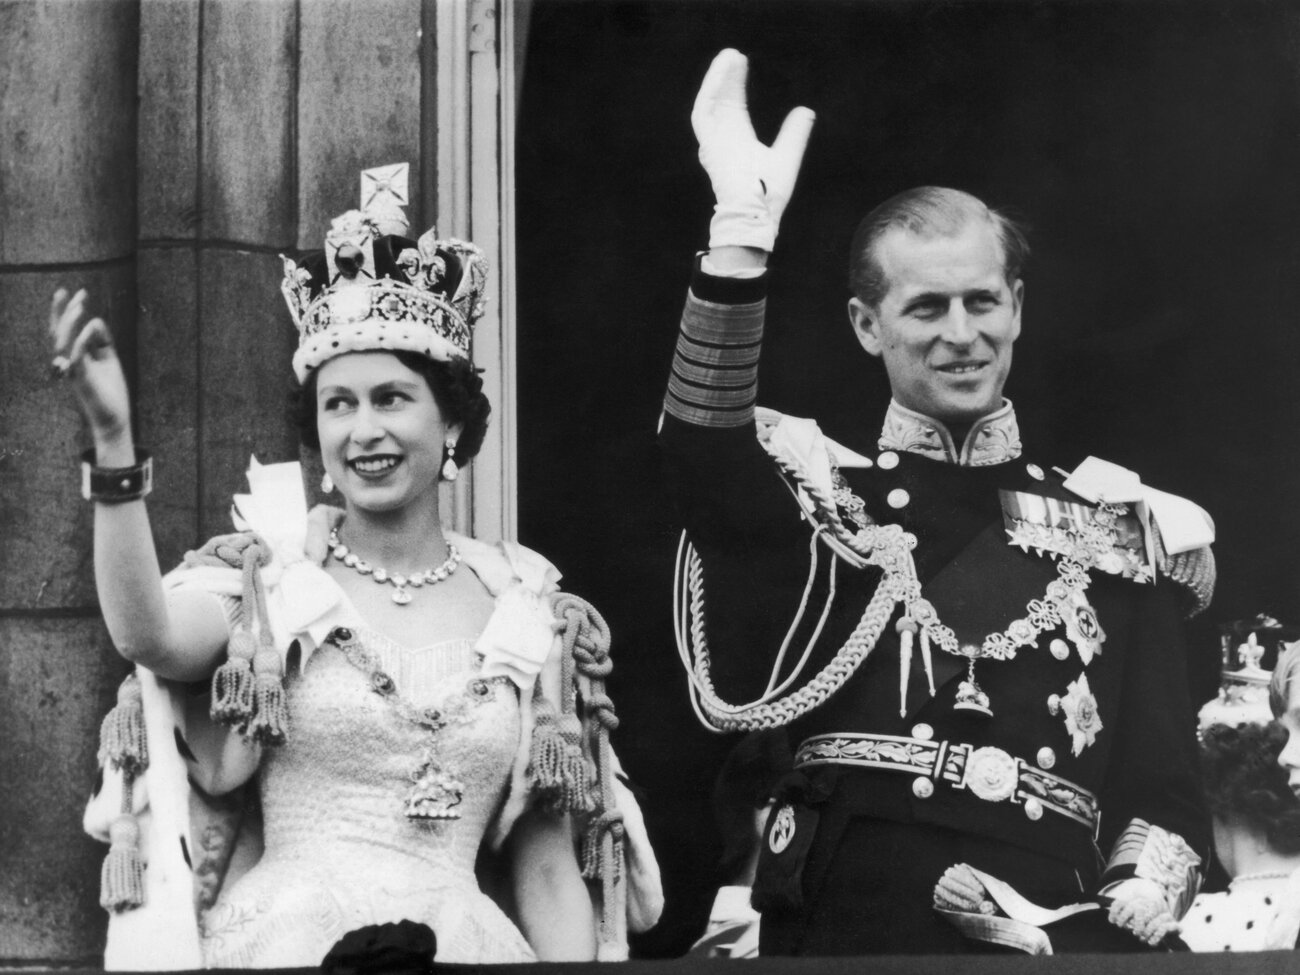 Queen Elizabeth II and the Duke of Edinburgh wave at the crowds from the balcony at Buckingham Palace on June 2, 1953. (Keystone/Getty Images)